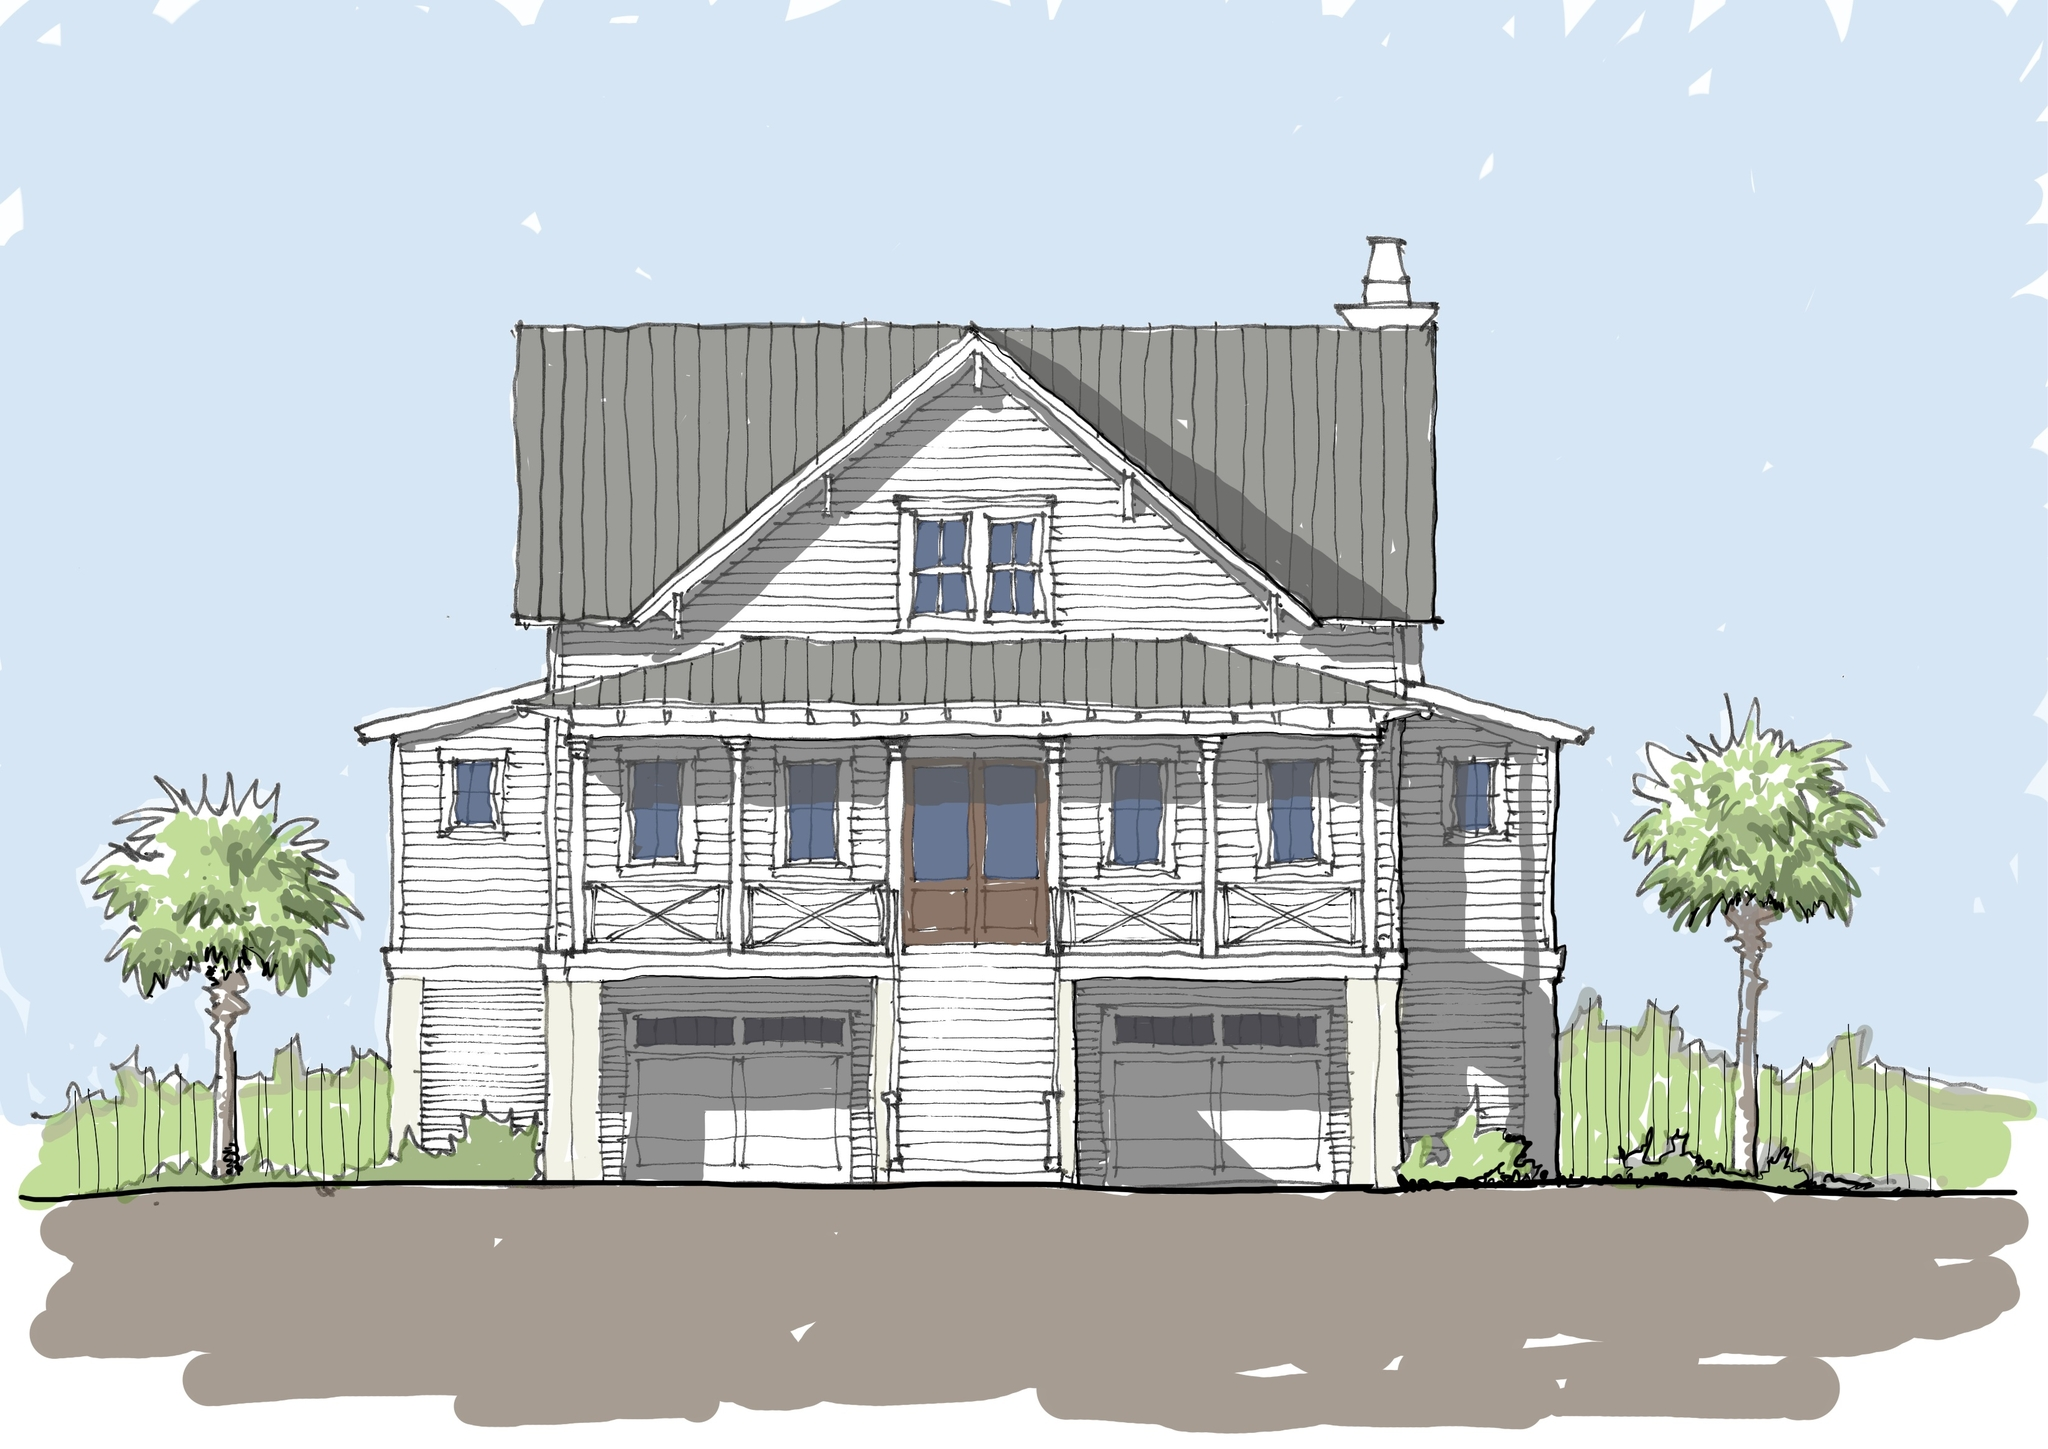 Dunes Cove Flatfish Island Designs Coastal Home Plans